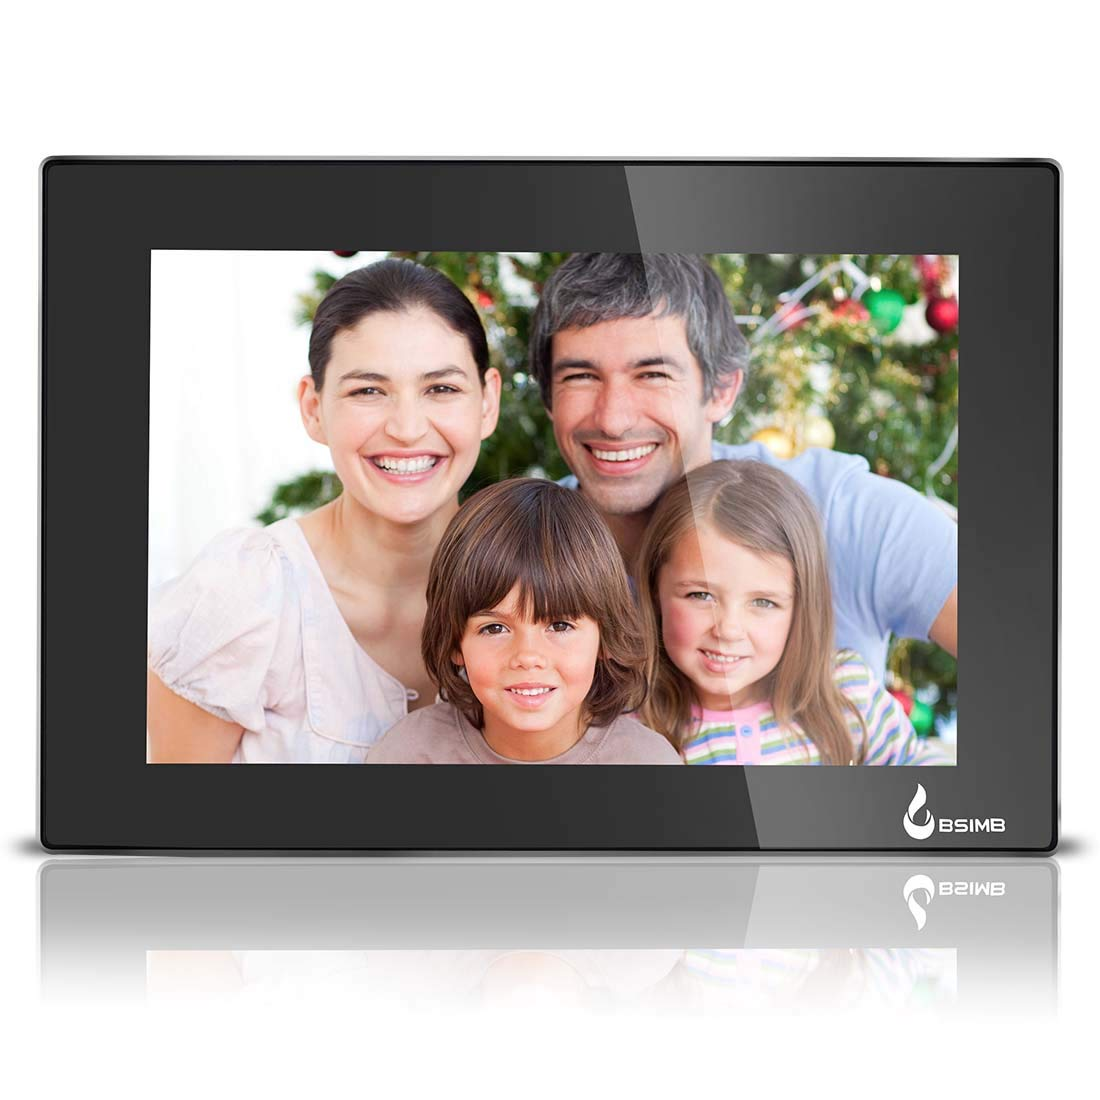 BSIMB 10.1 Inch Wi-Fi Digital Picture Frame Digital Photo Frame 1280x800 IPS Touch Screen Add Photos and Videos from iPhone & Android App Twitter Facebook Email W01